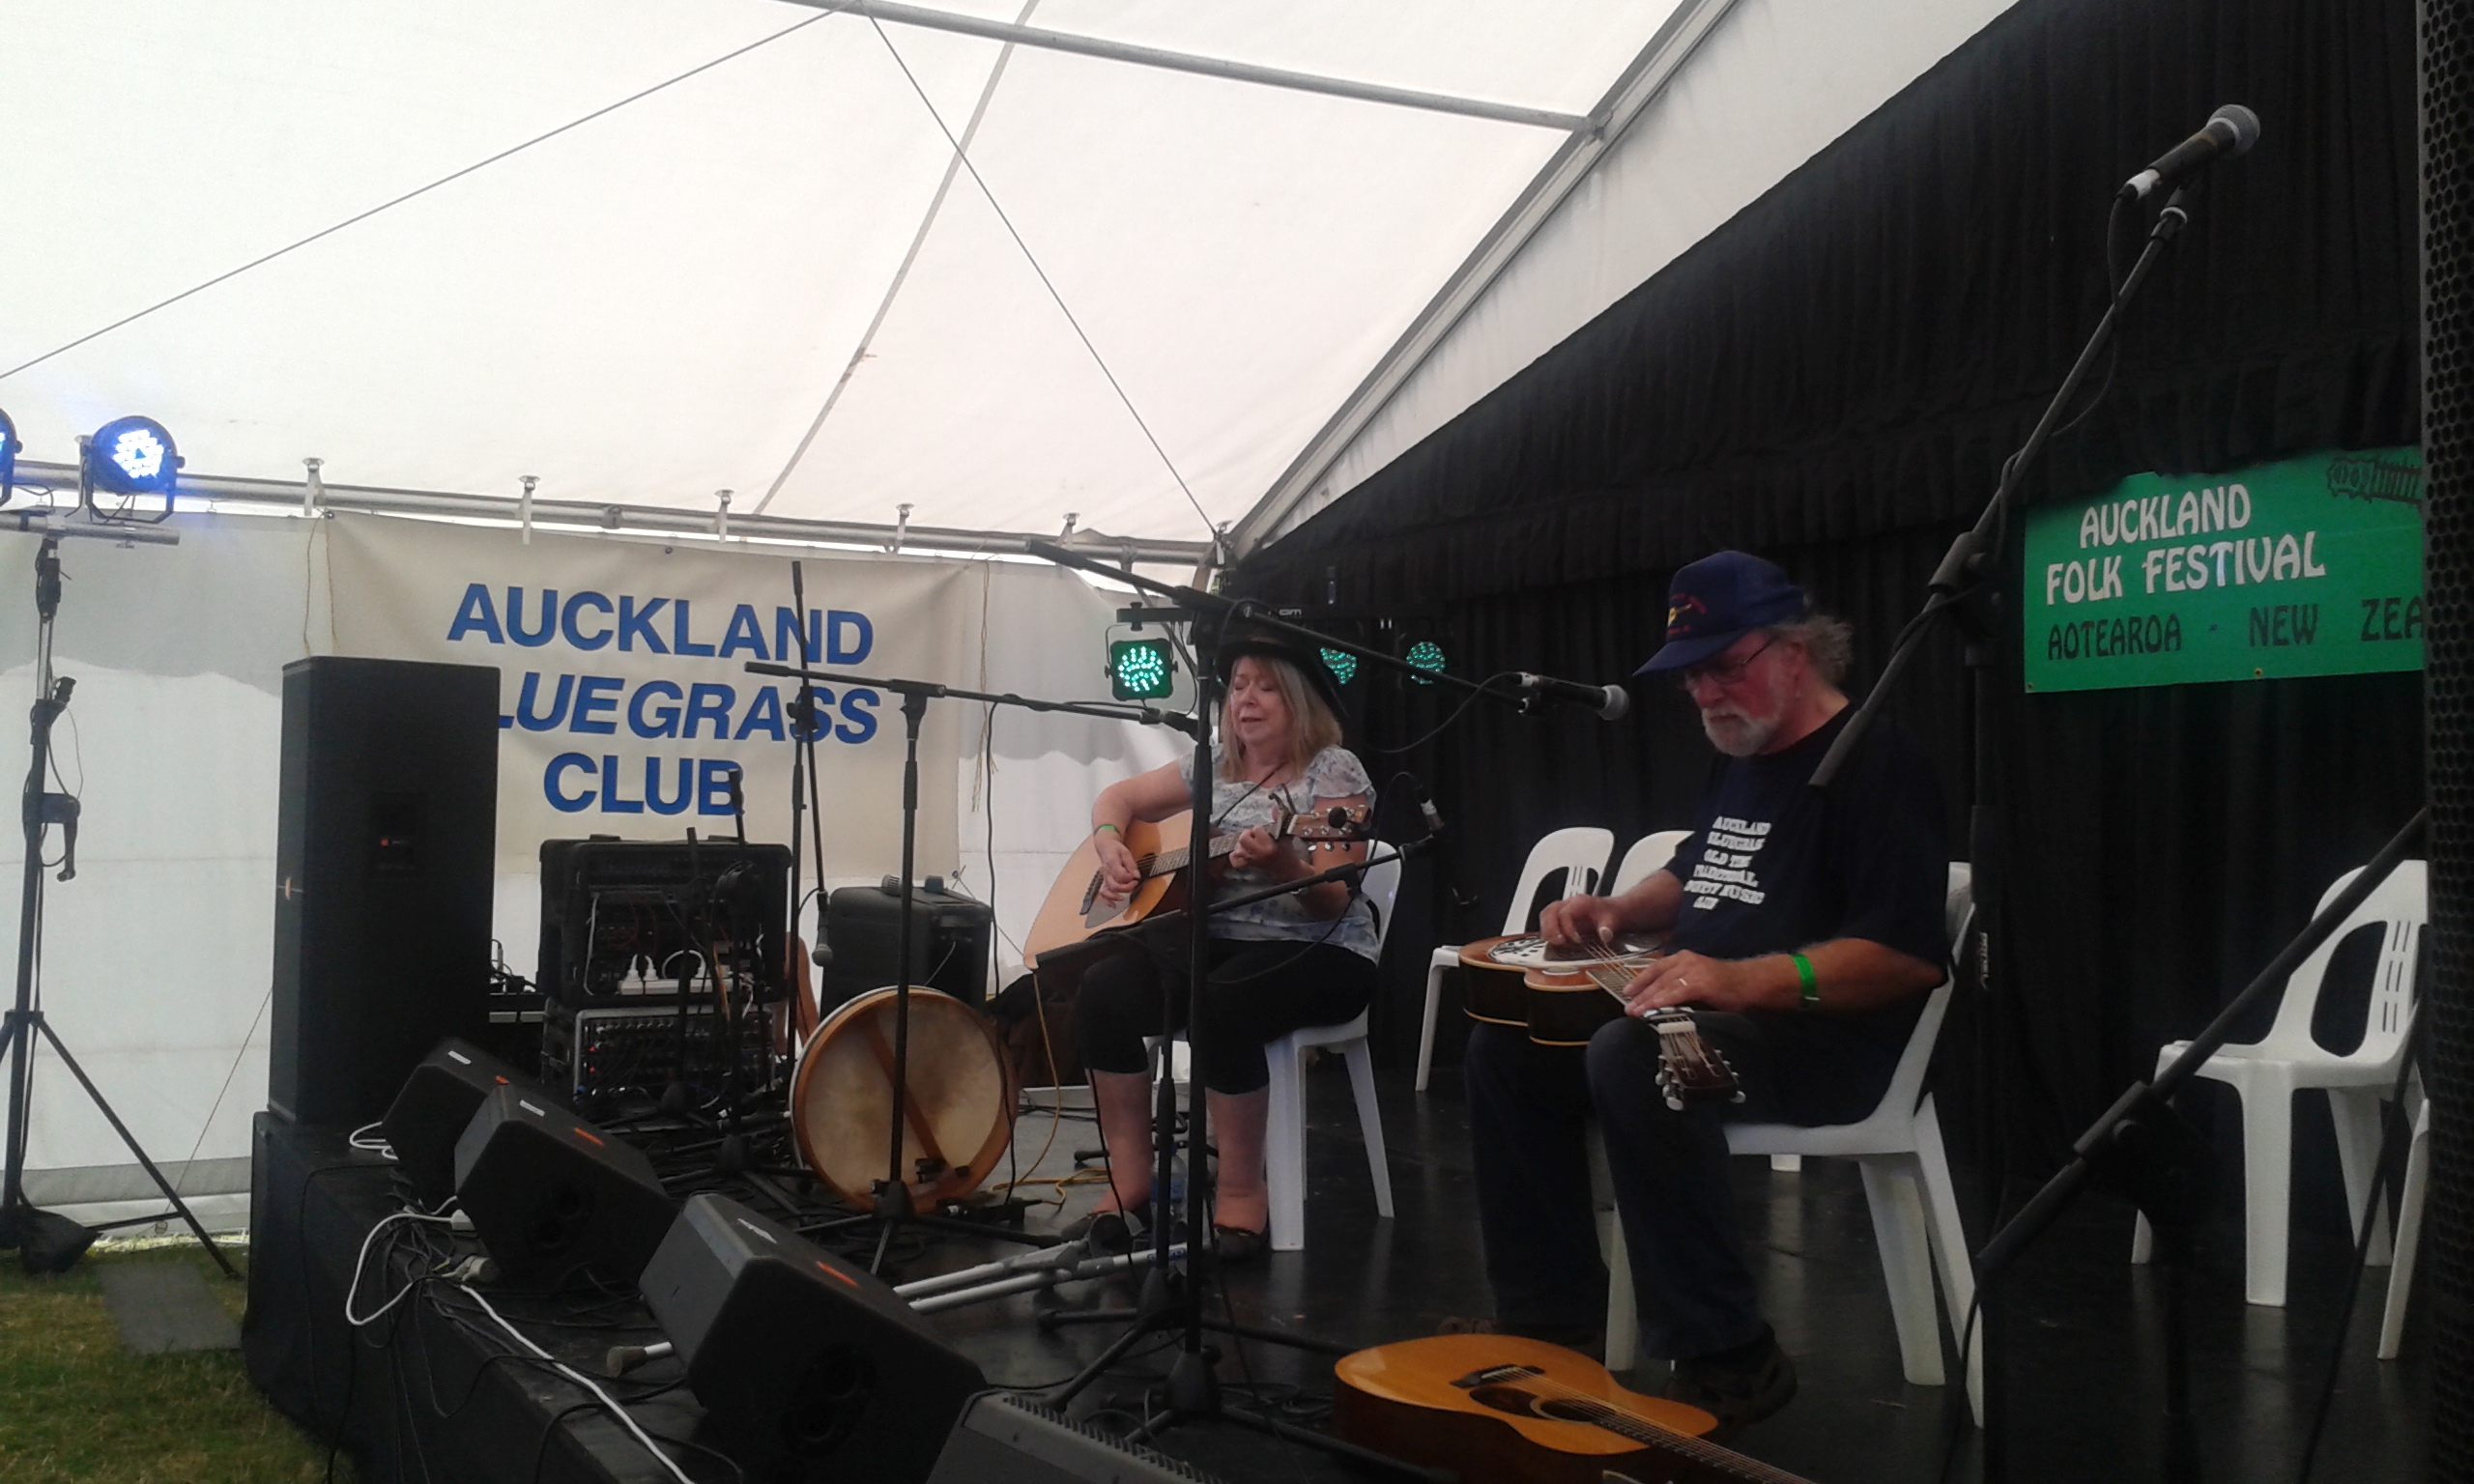 Beverley and Al Young at the Bluegrass Concert, Auckland Folk Festival 2017